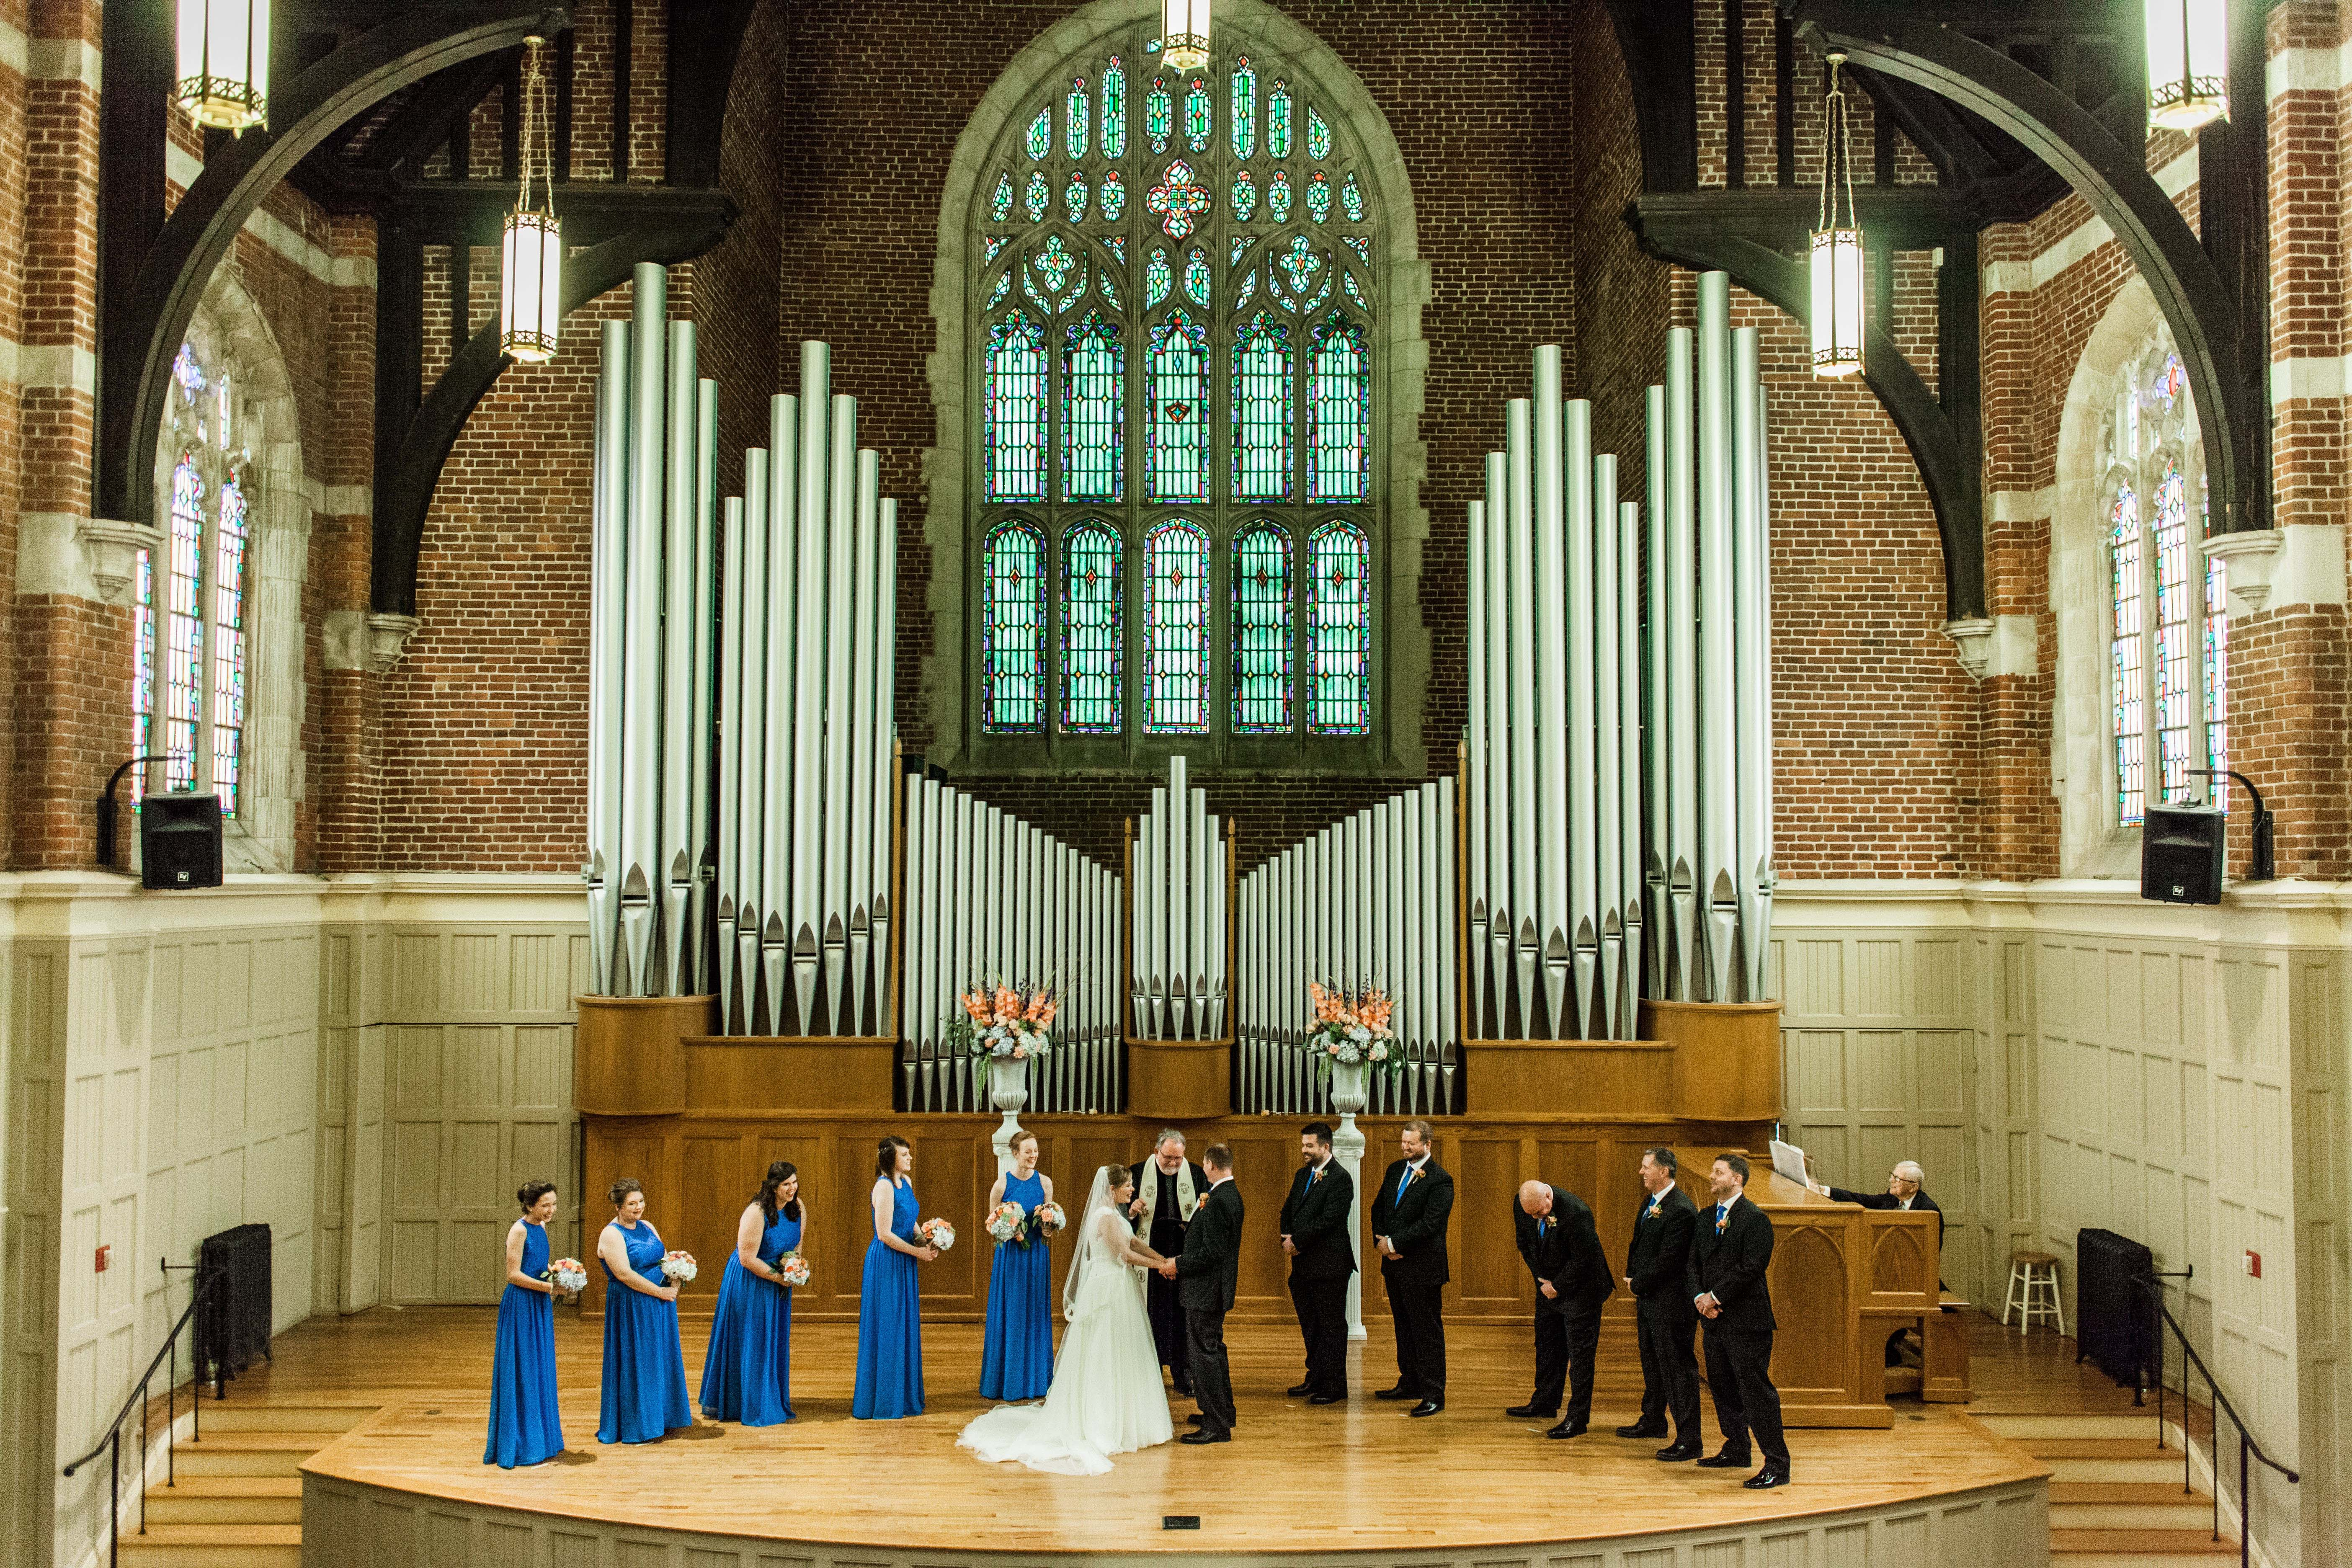 MAULDIN_WEDDING_MONTGOMERY_ALABAMA_WEDDING_PHOTOGRAPHY_65